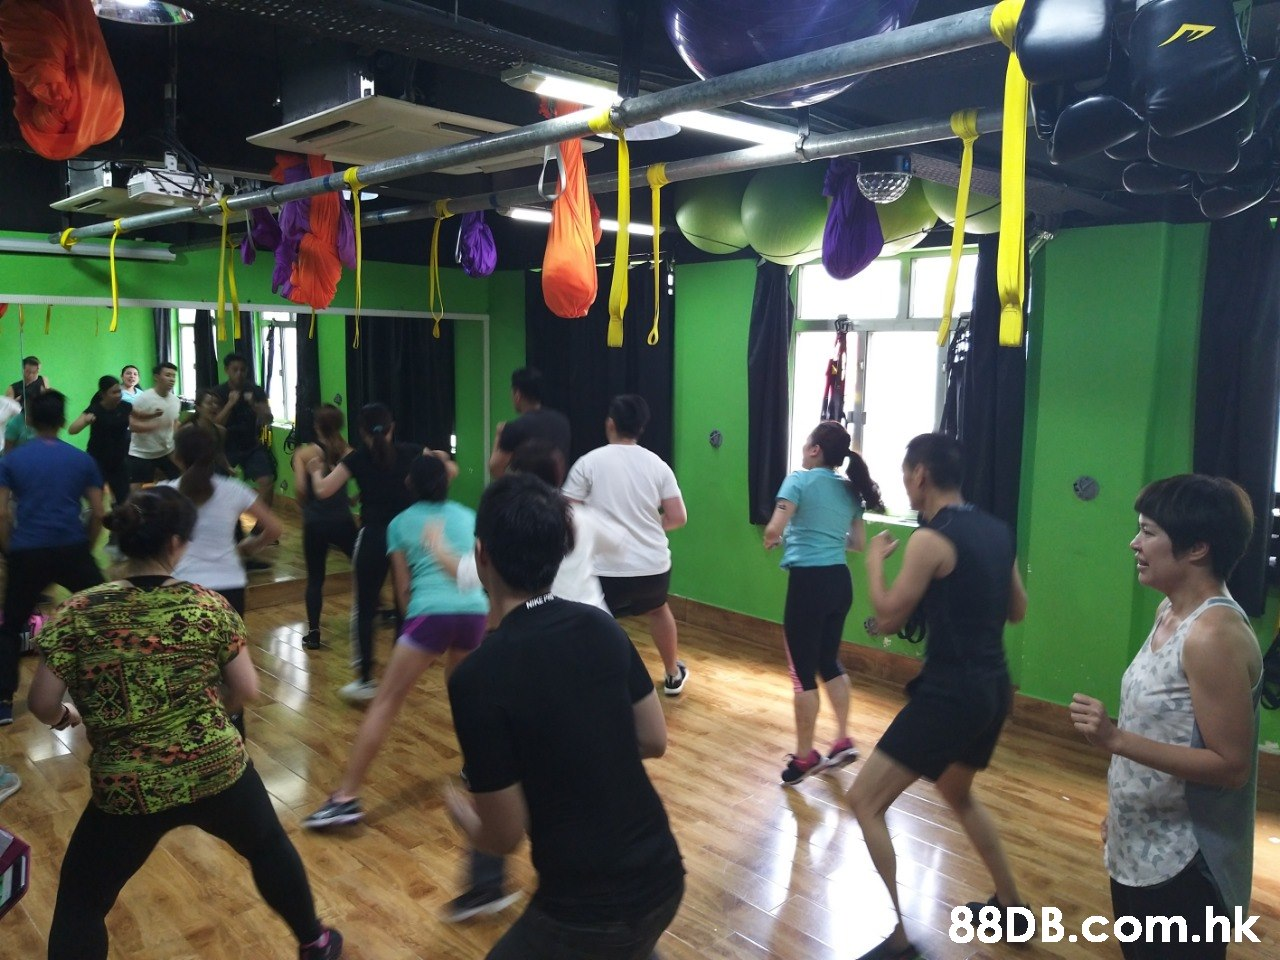 .hk  Physical fitness,Dance,Room,Exercise,Leisure